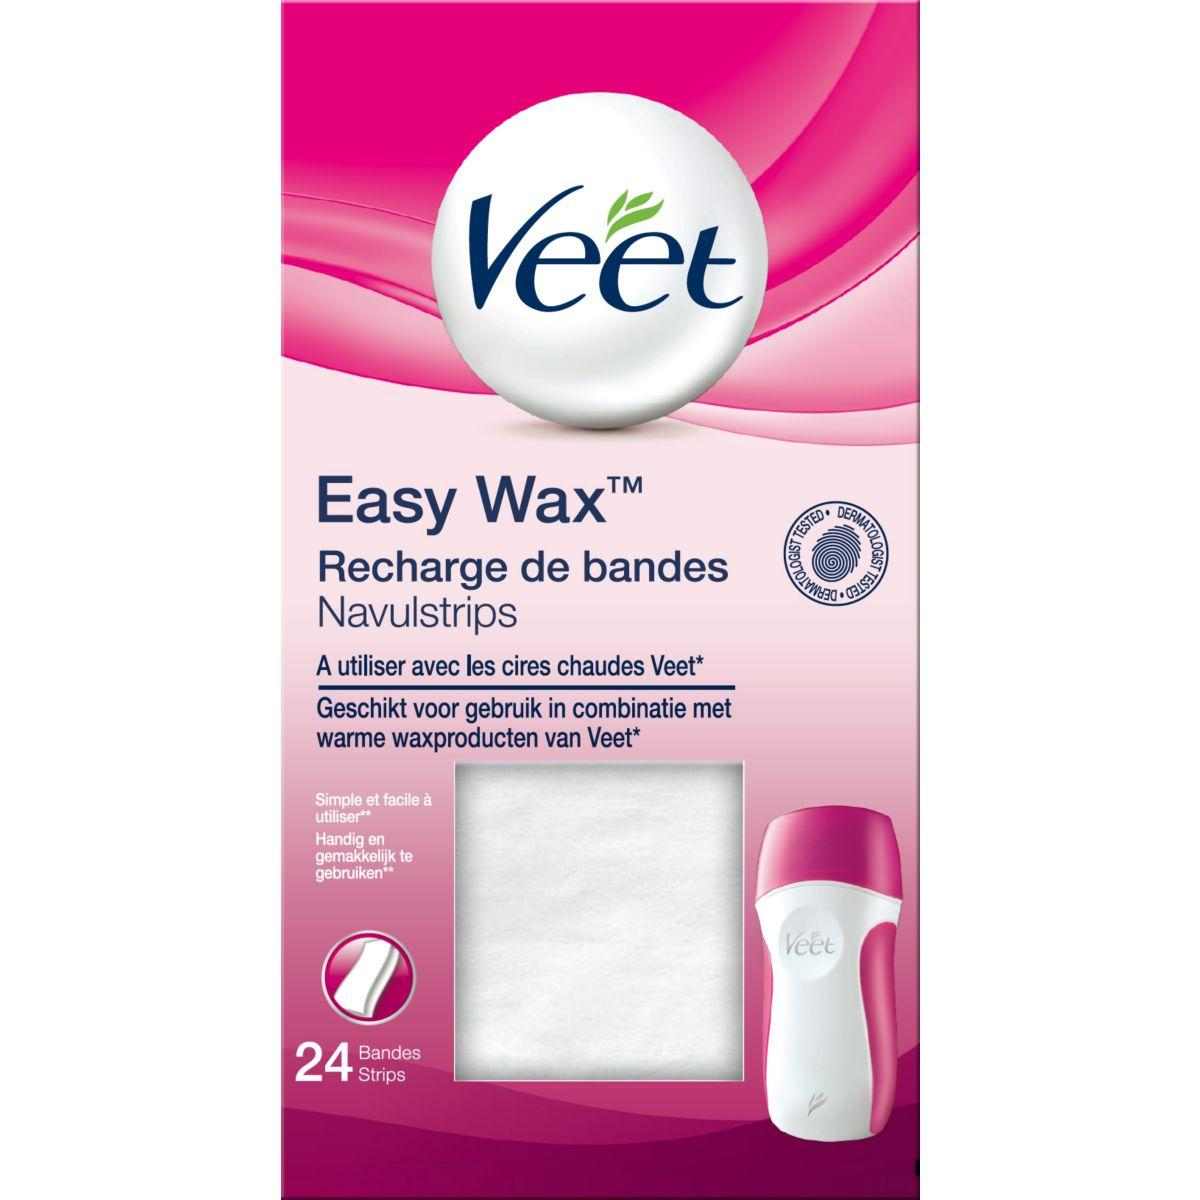 Bande � cire veet recharge bandes easywax (photo)